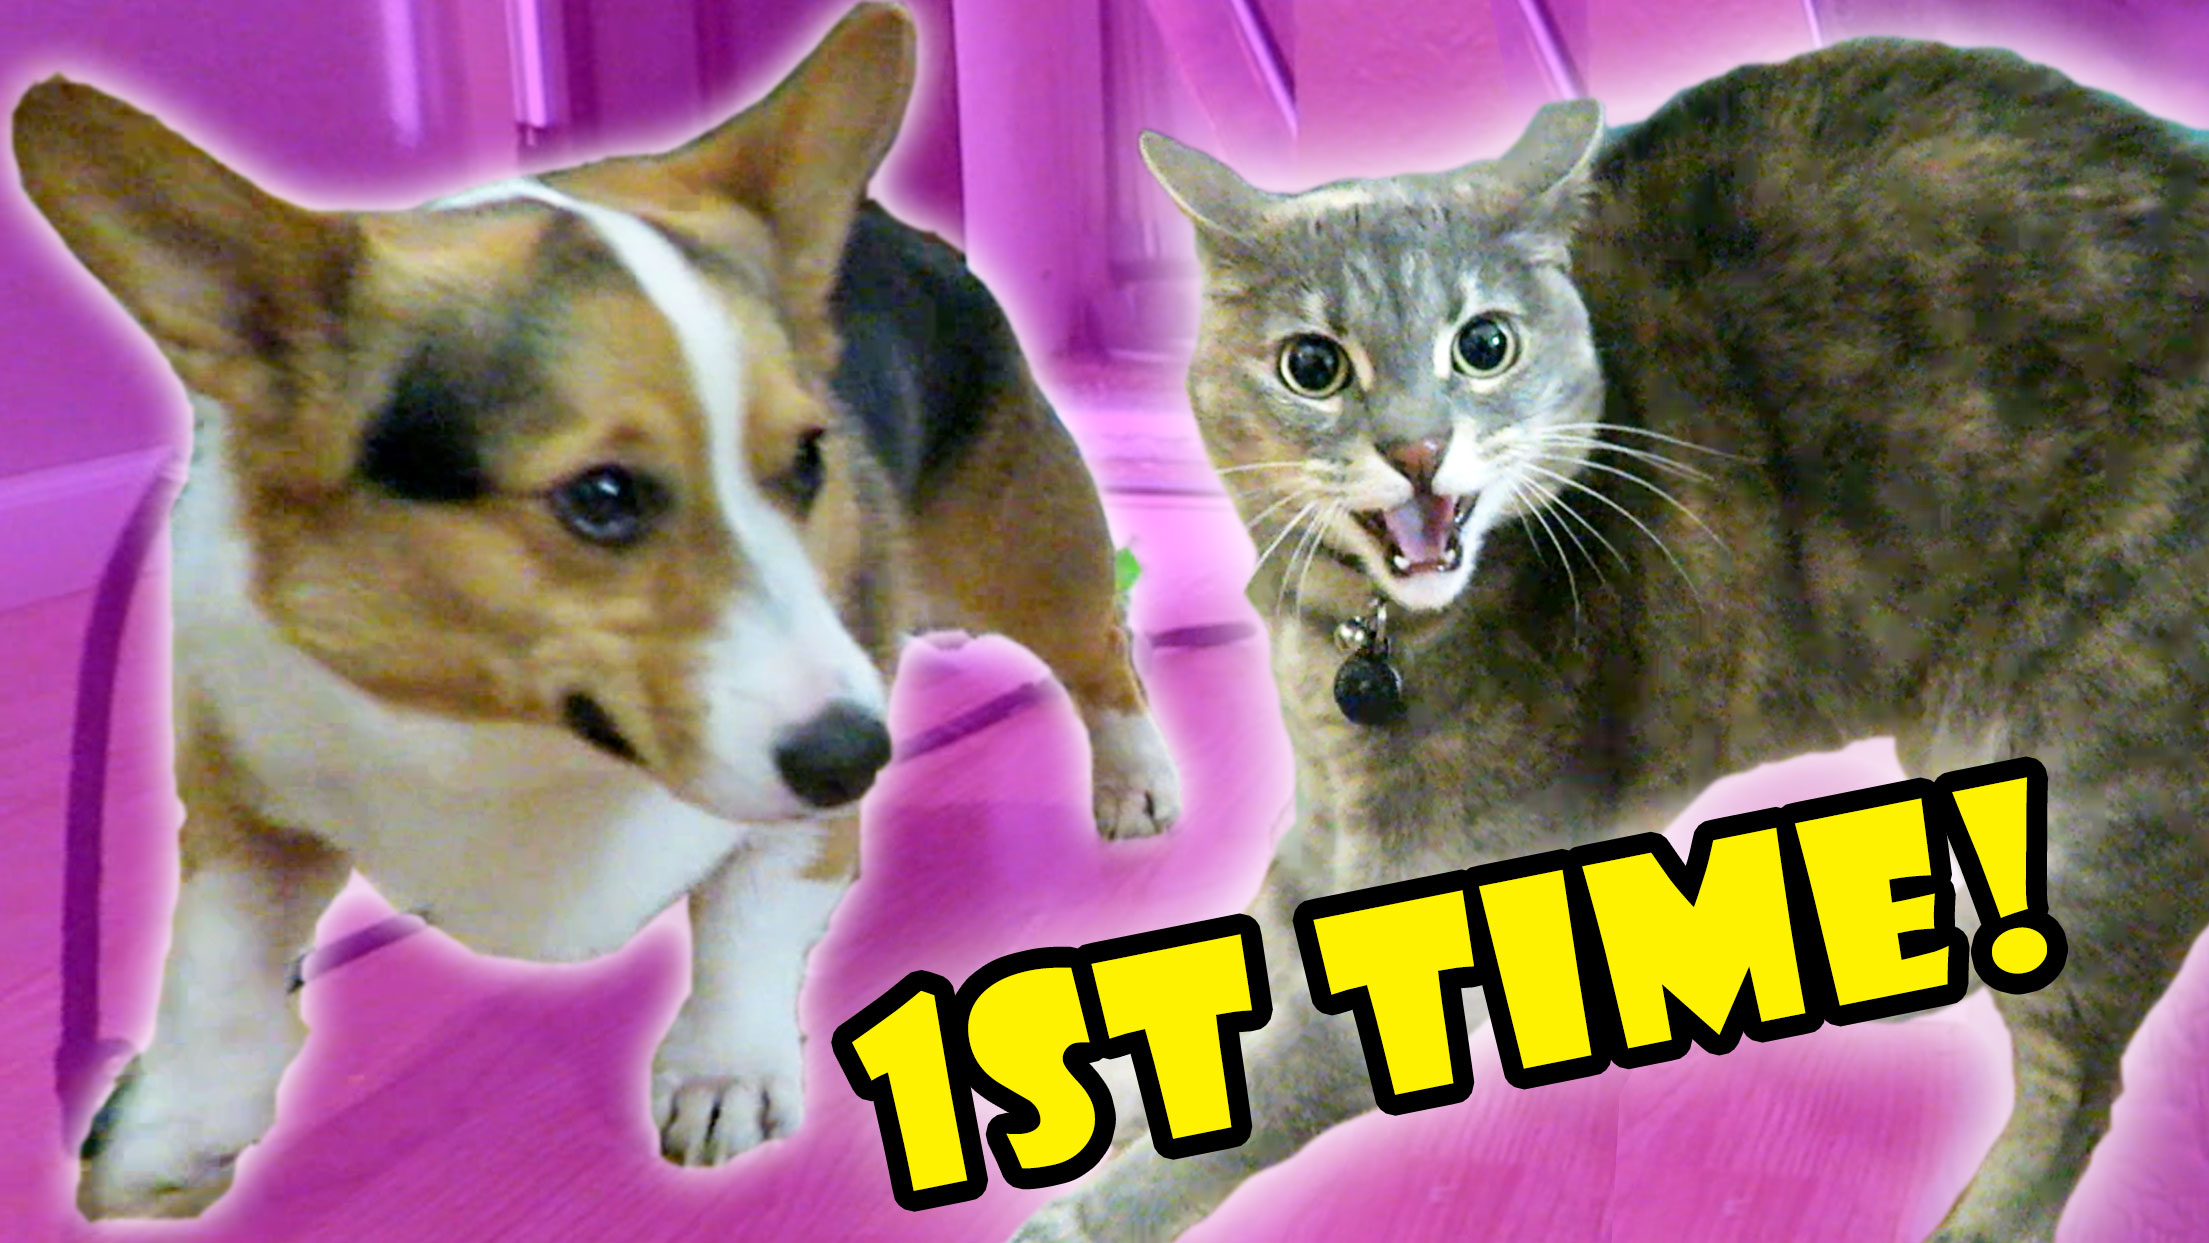 CORGI DOG MEETS CAT 1st TIME -- FAIL